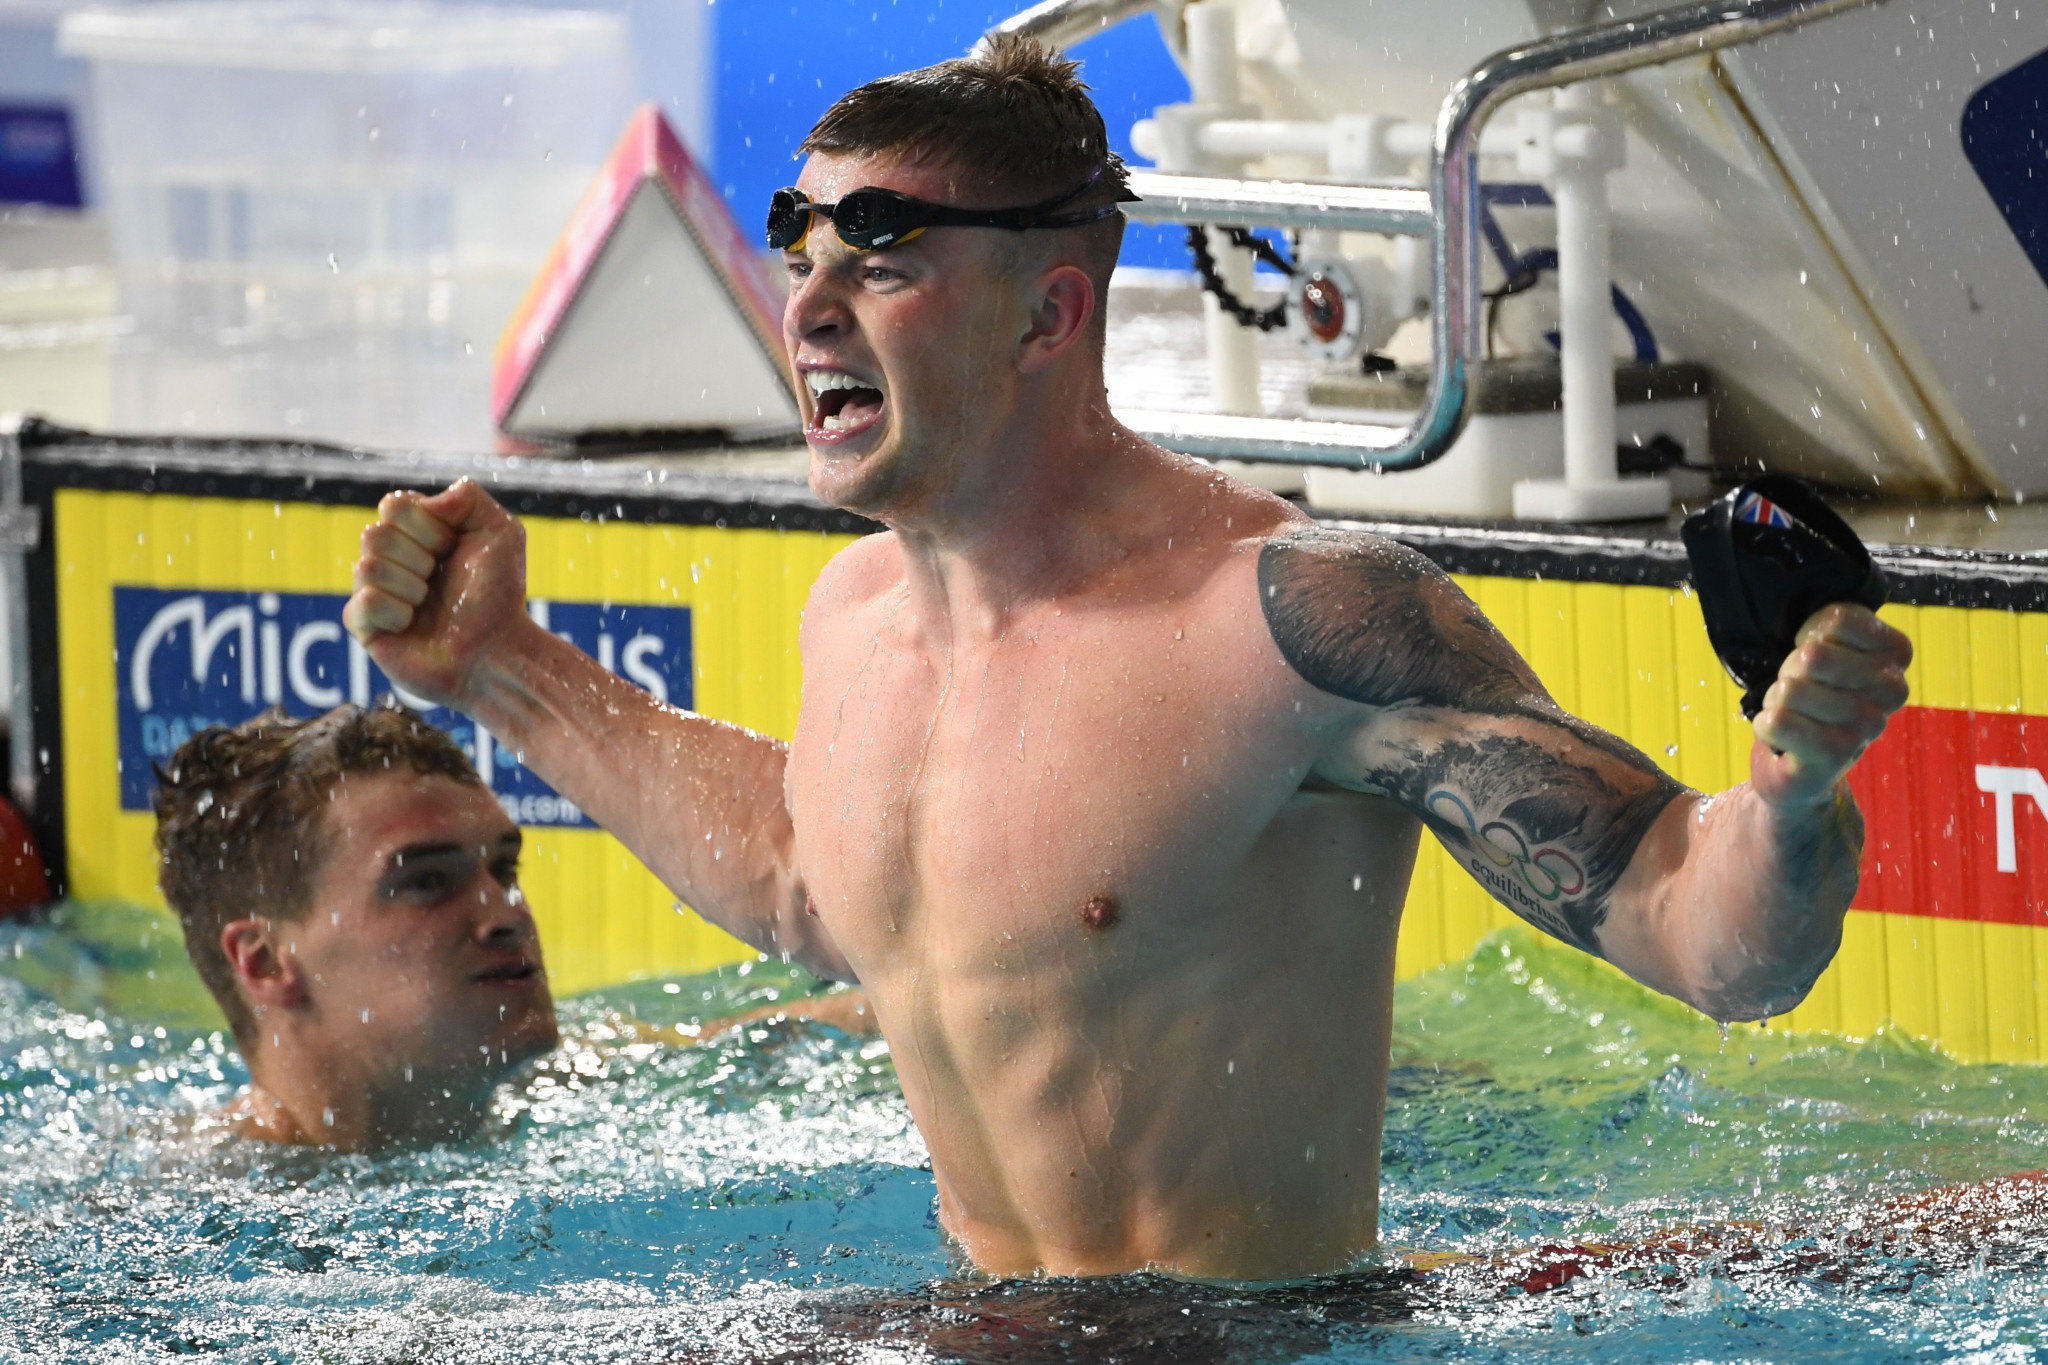 Peaty smashes own world record to win men's 100m breaststroke at European Swimming Championships